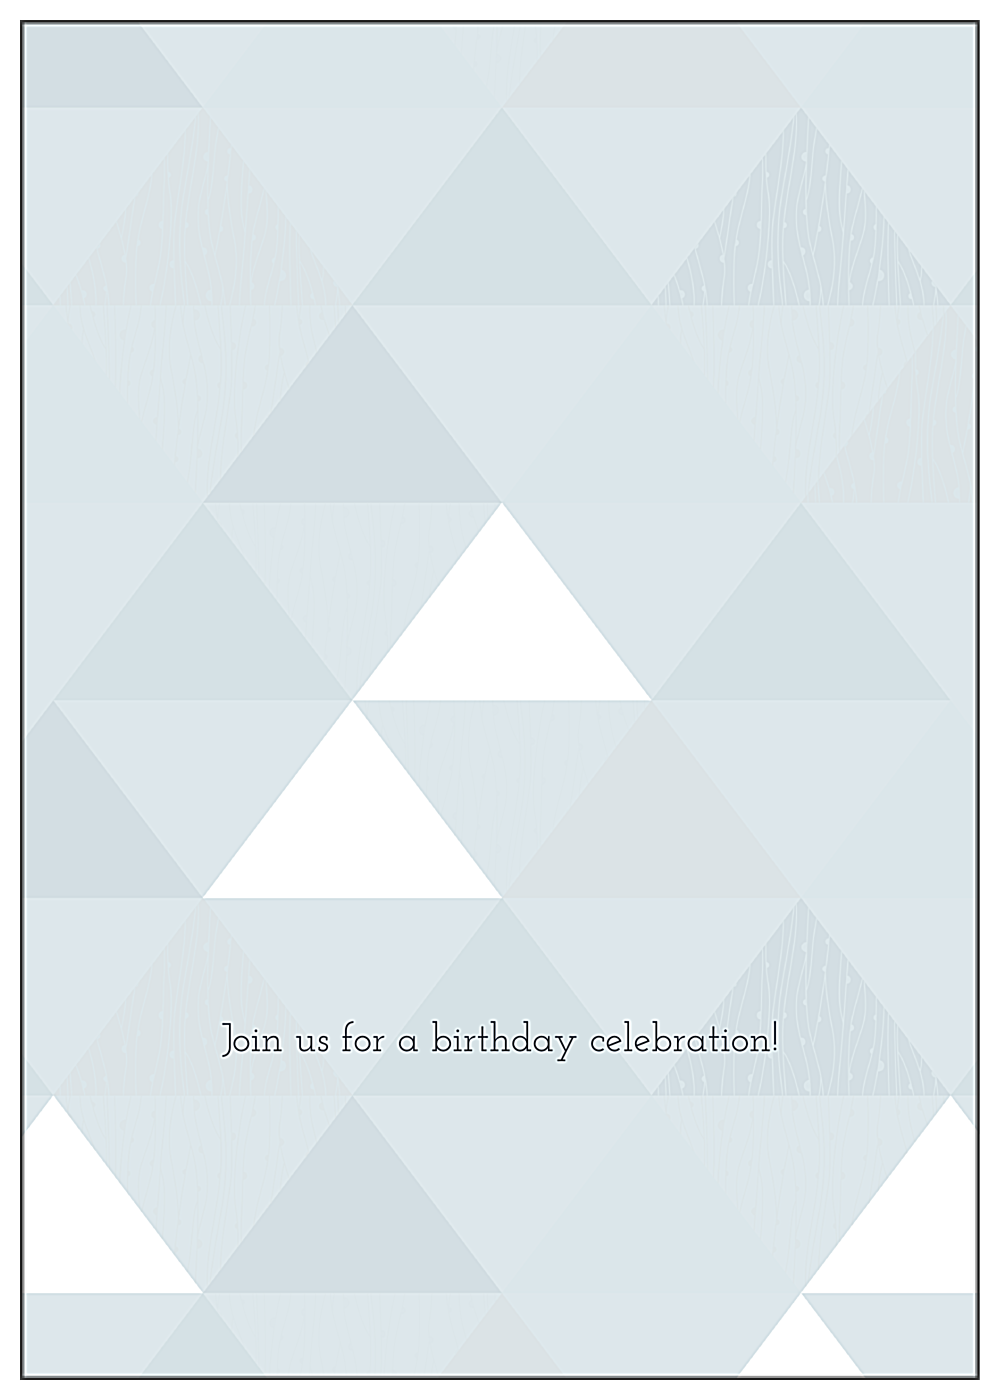 Triangle Party back - Greeting Cards Maker